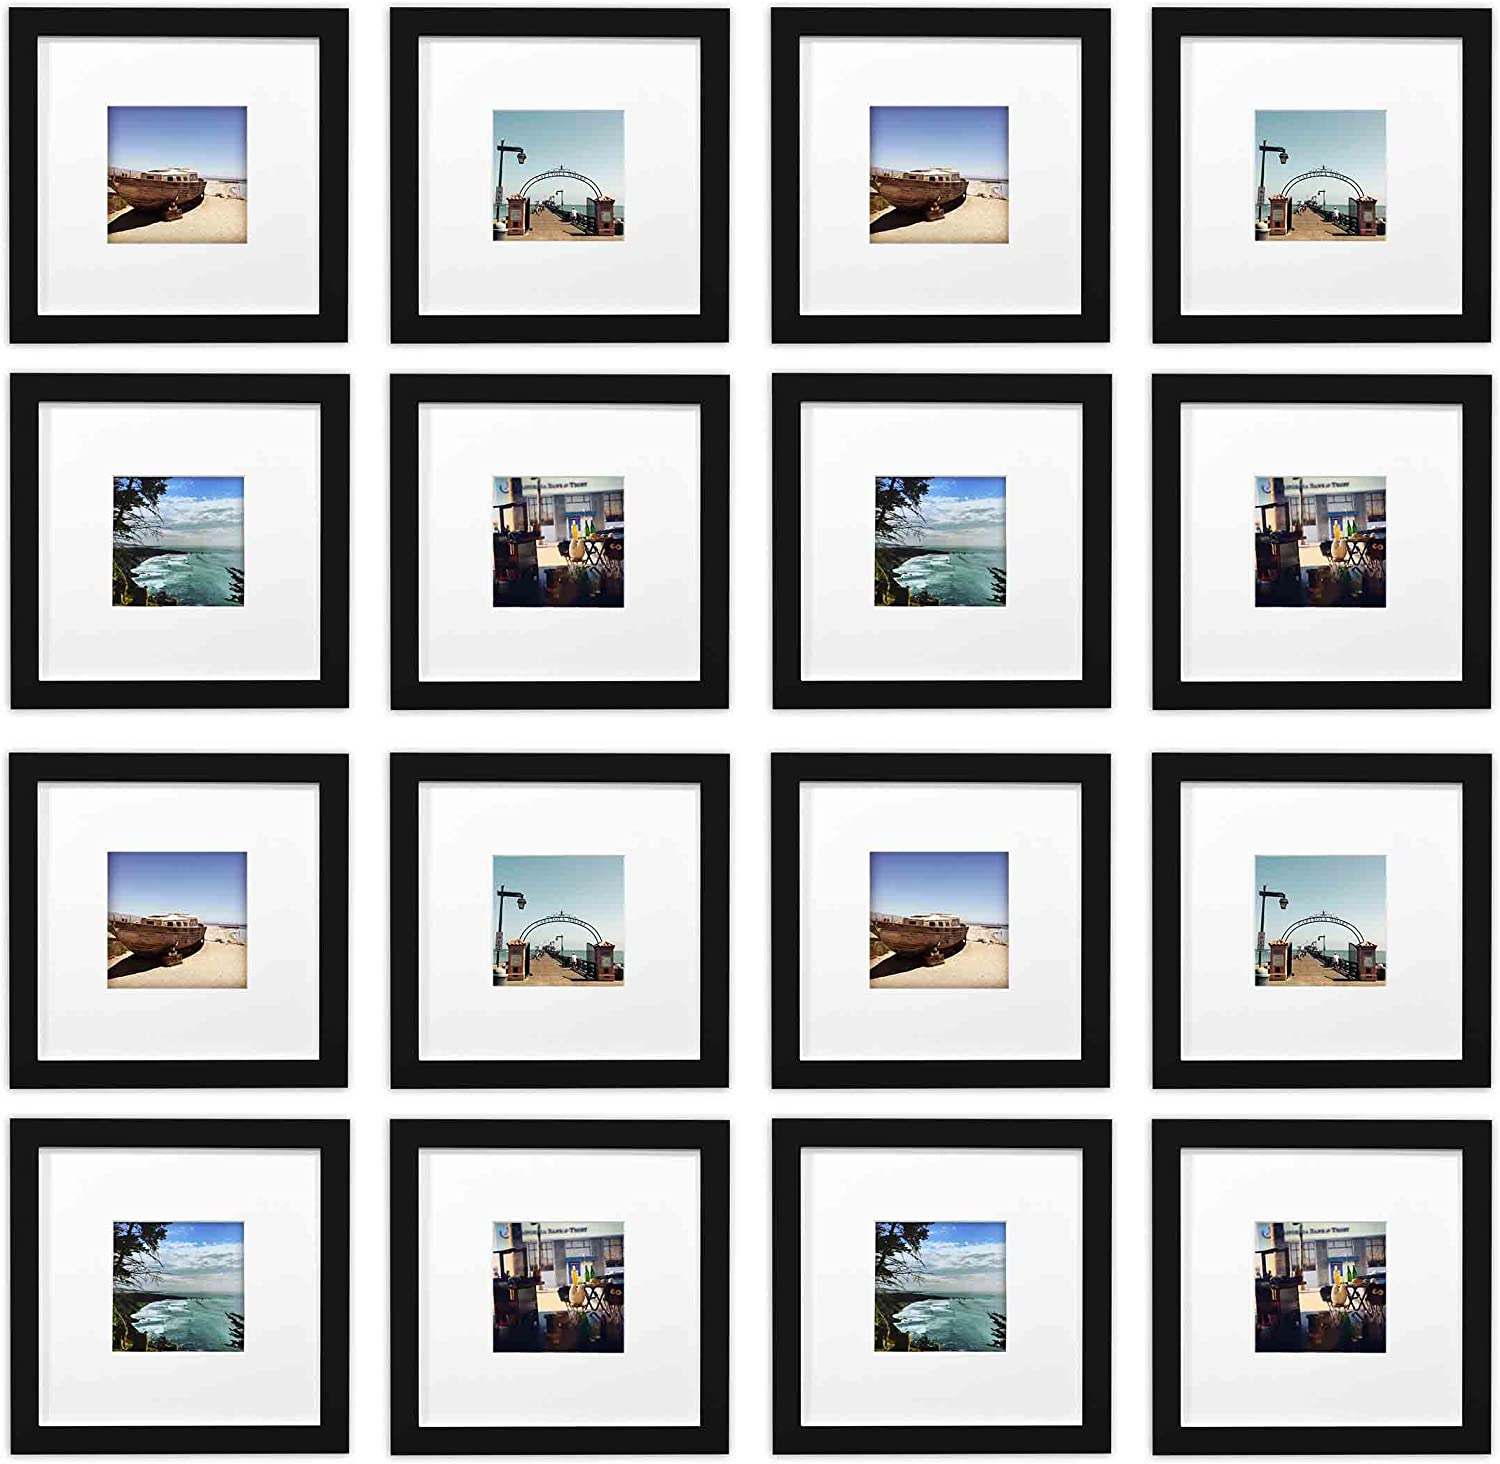 golden State Art Smartphone Instagram Frames Collection,Set of 16, 8x8-inch Square Photo Wood Frames with White Photo Mat & Real Glass for 4x4 photo, Black